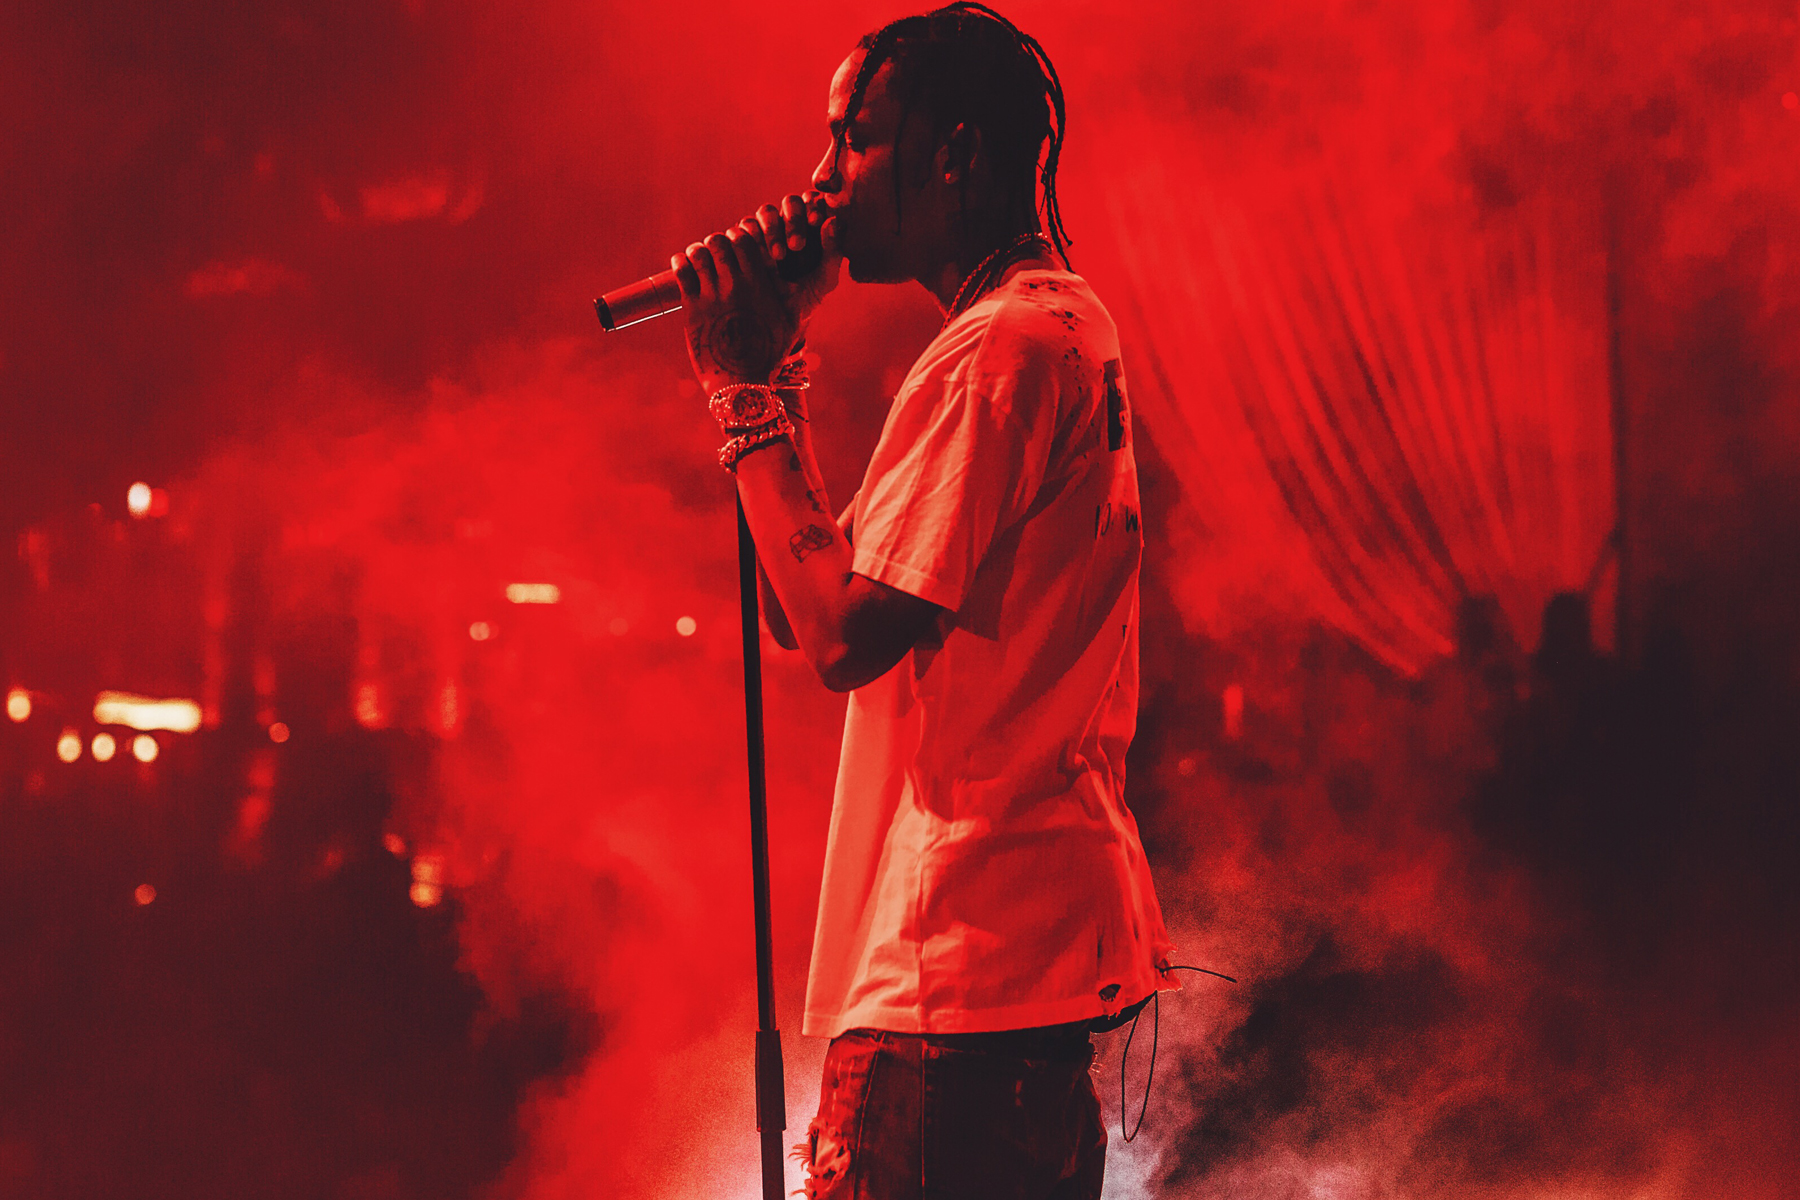 travis scott kid cudi new album collaboration feature